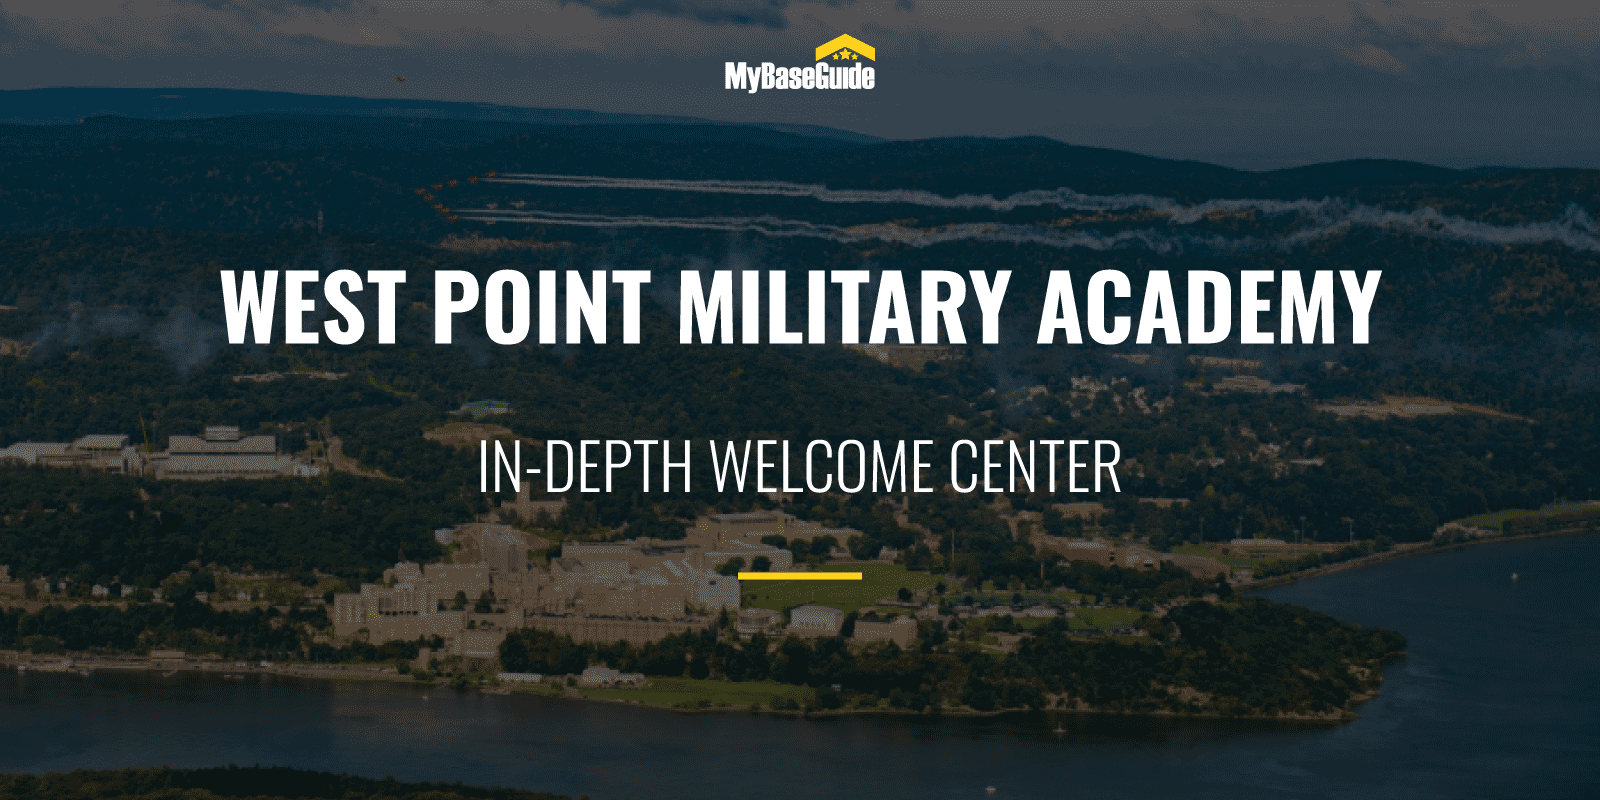 West Point Military Academy: In-Depth Welcome Center